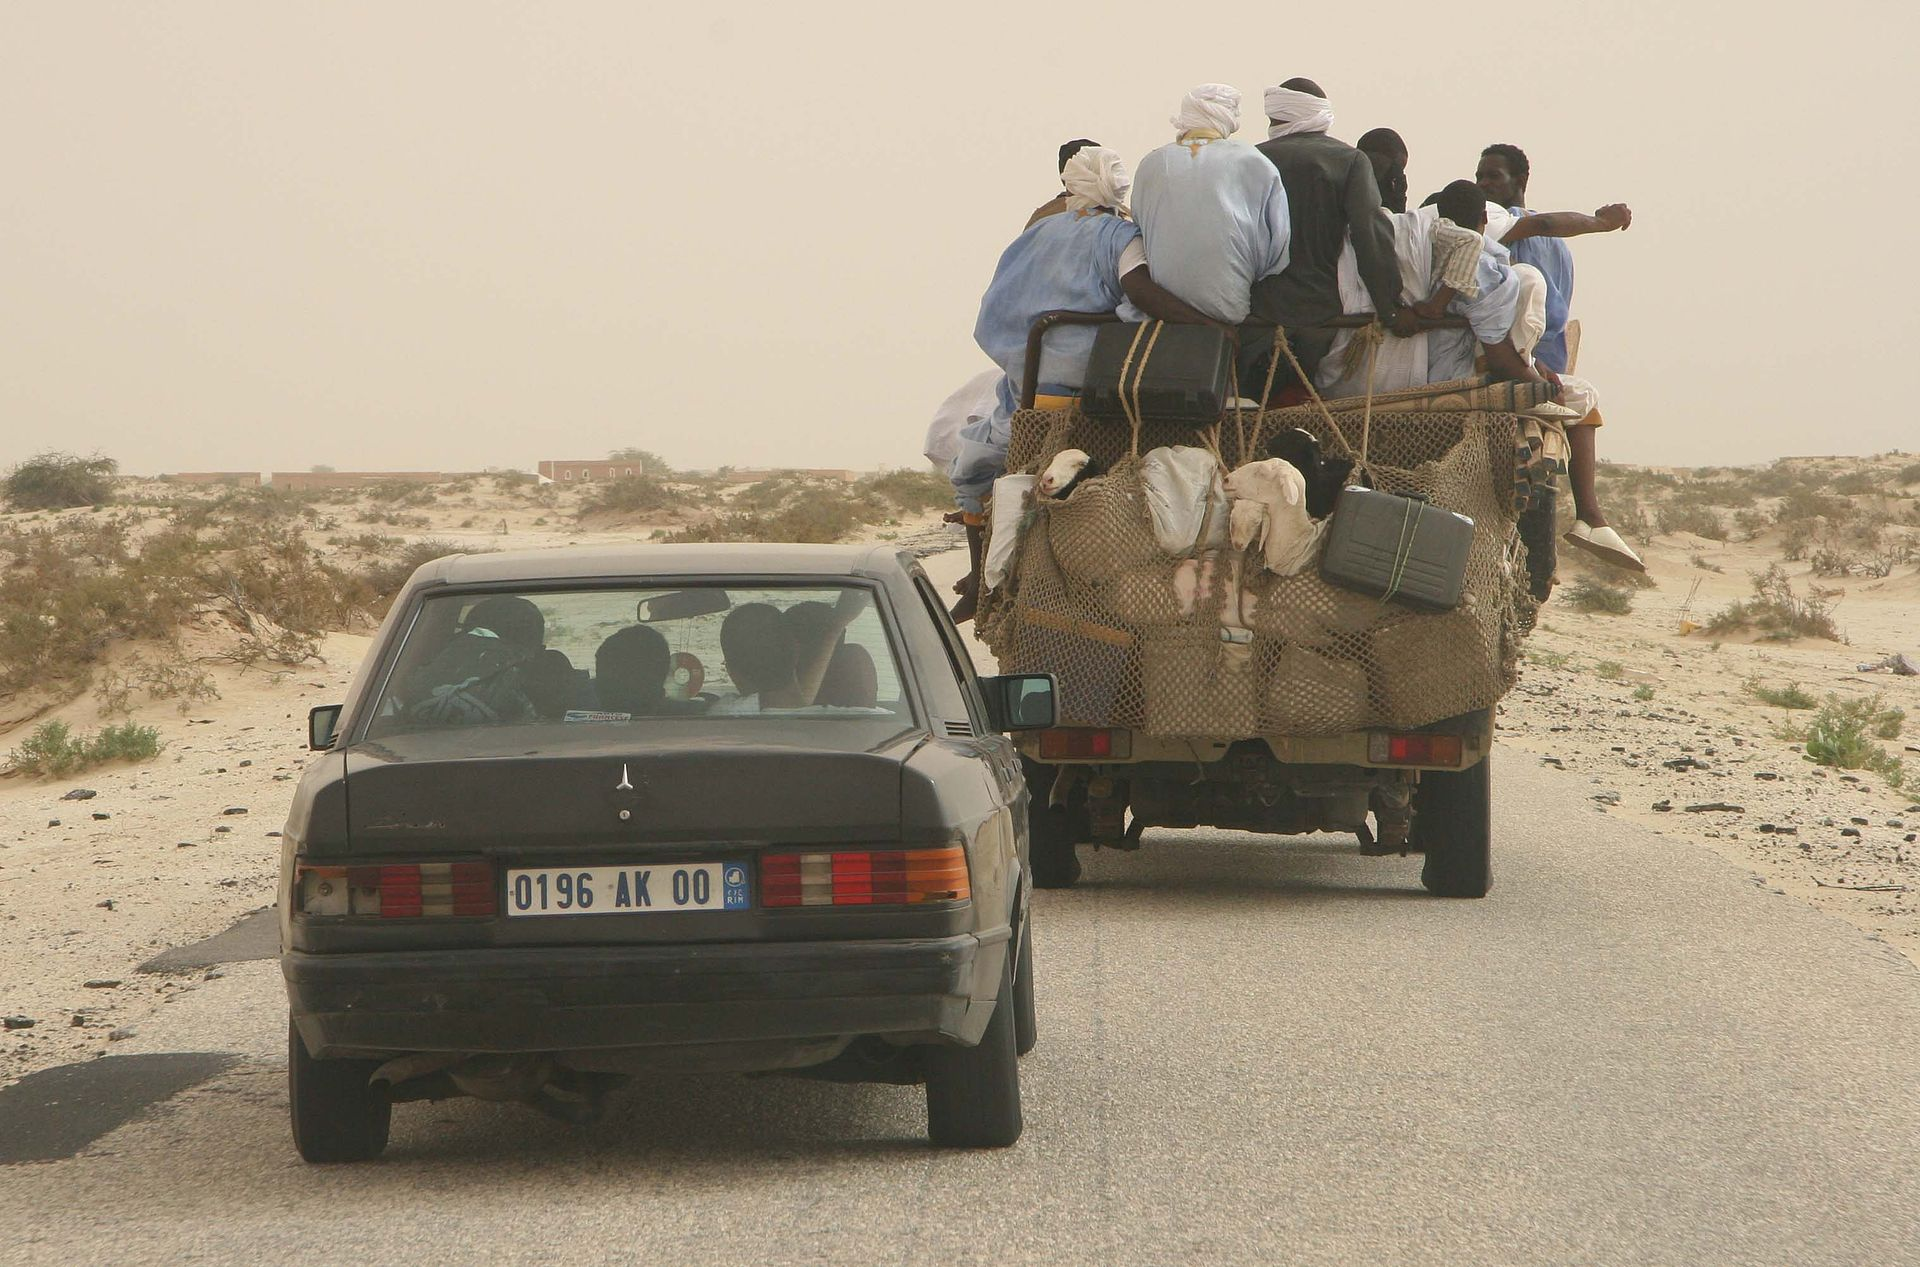 Road from Nouakchott to Mauritanian